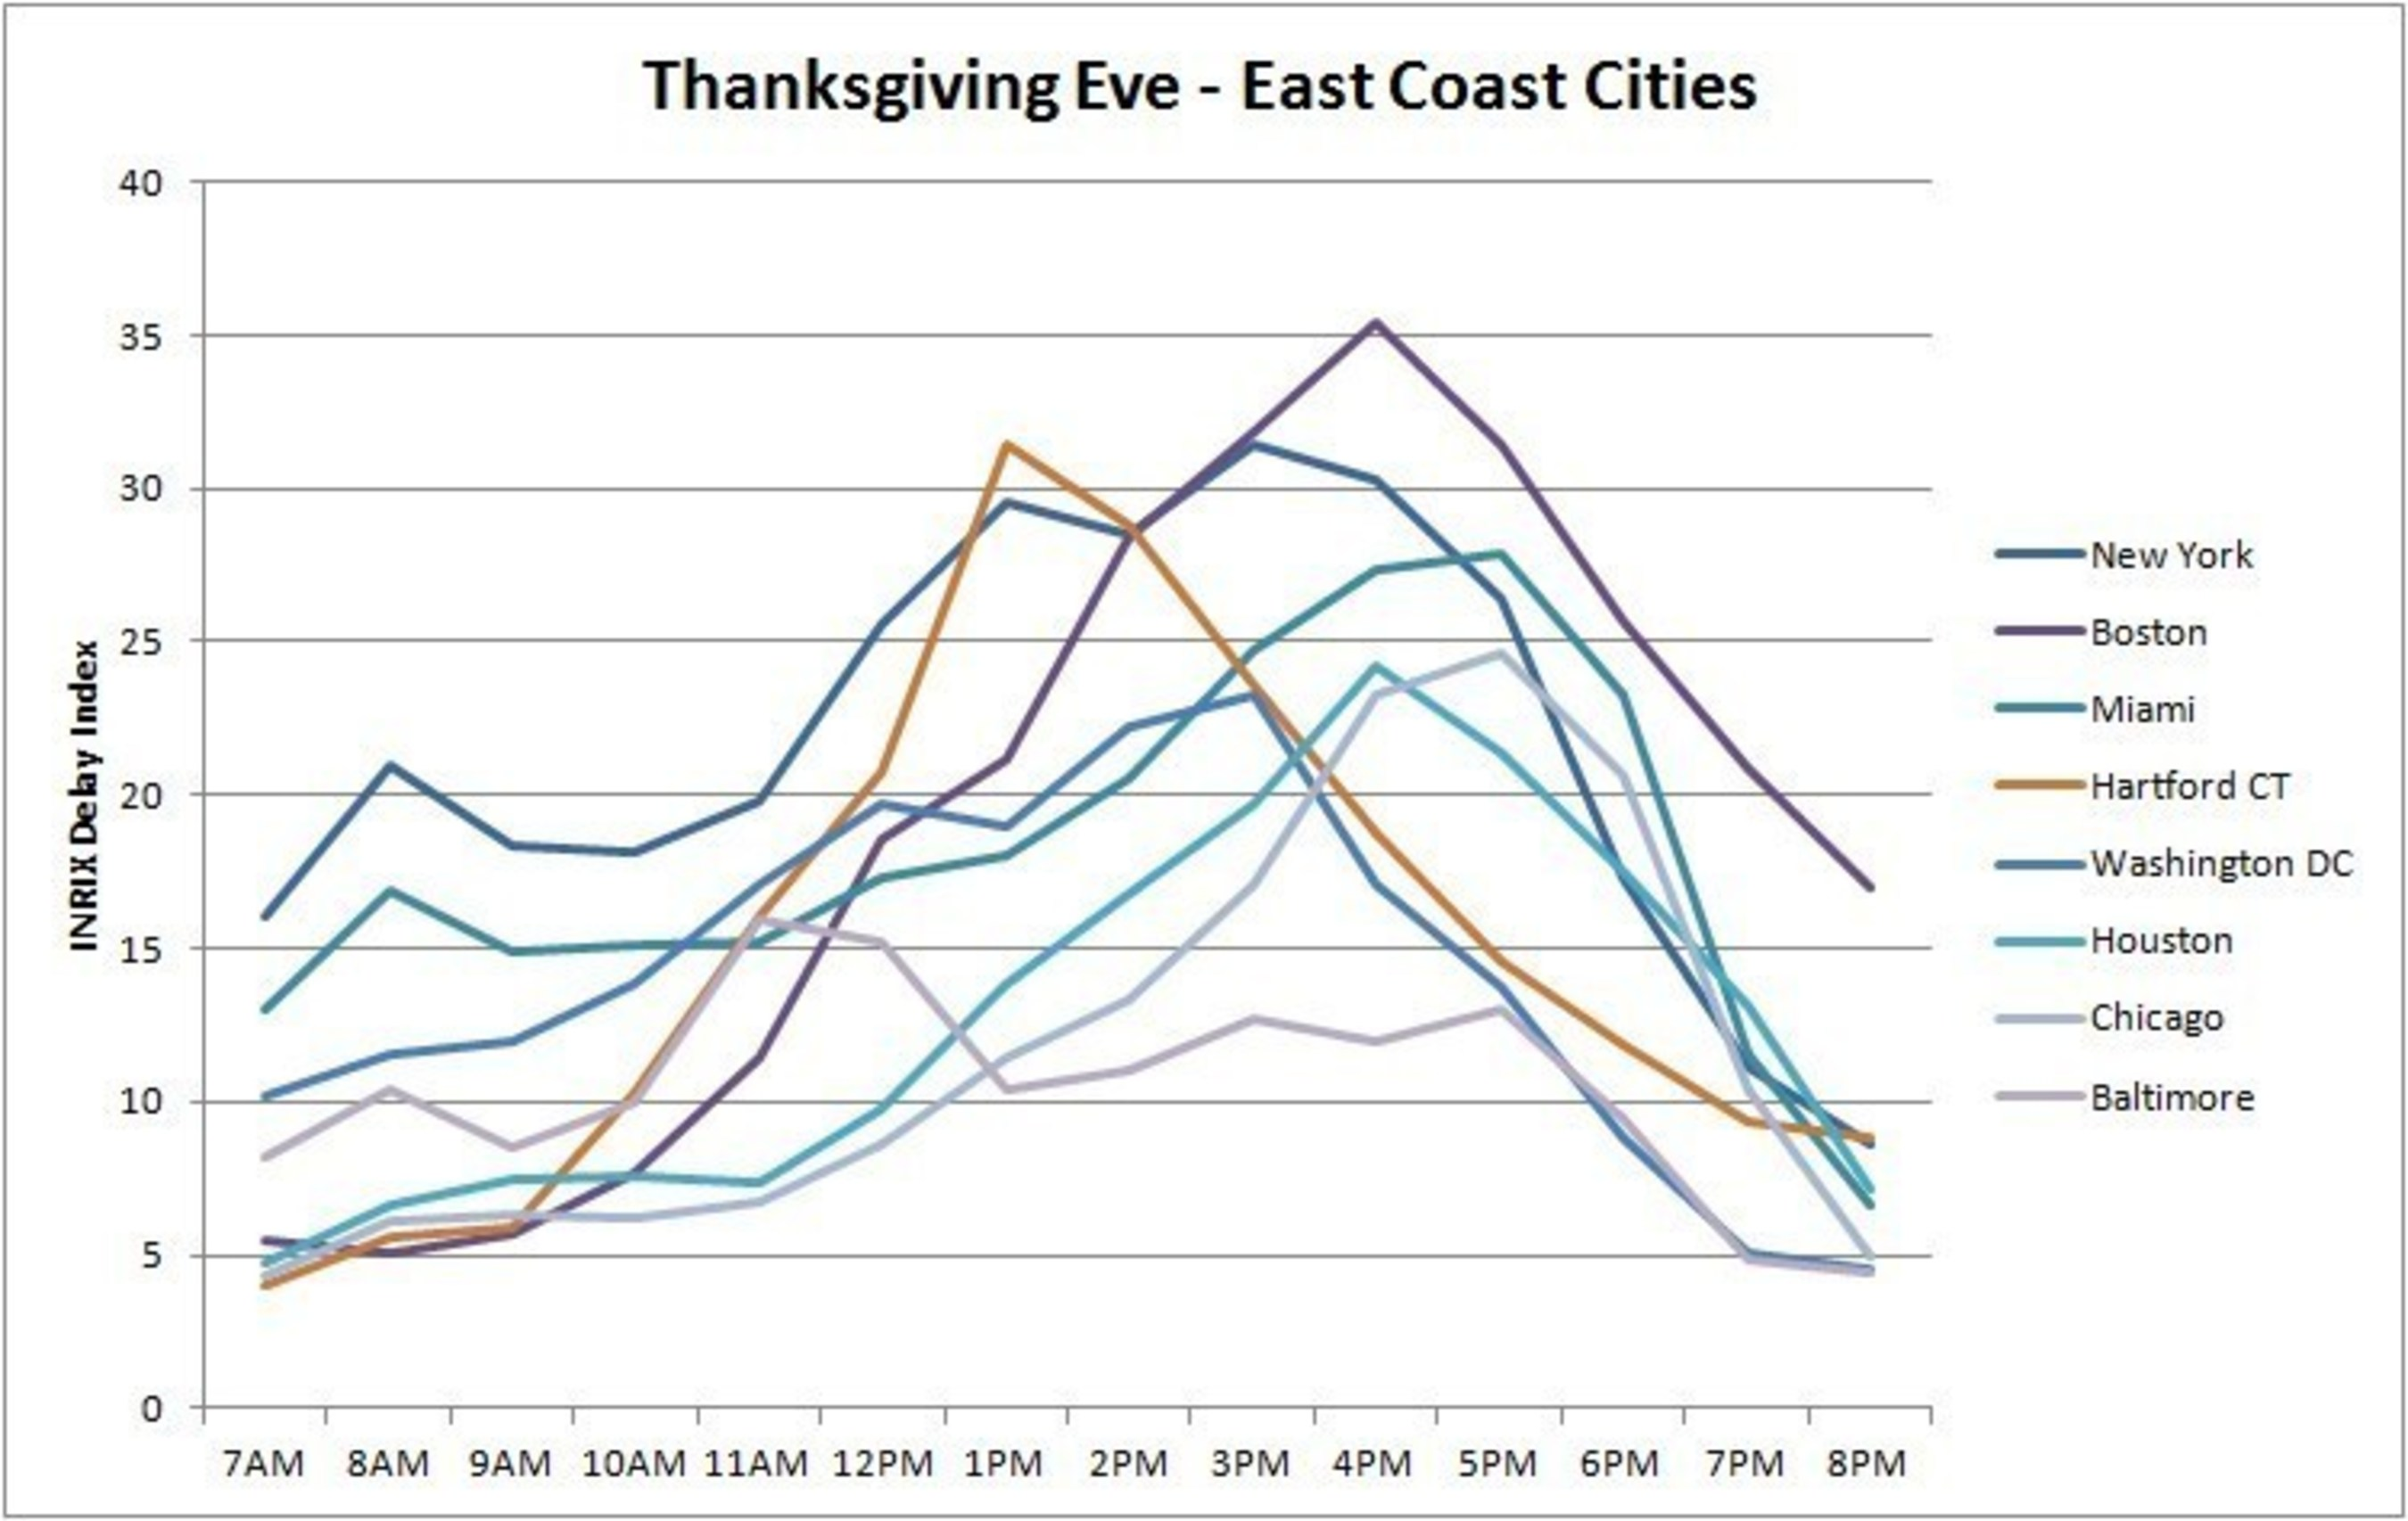 Thanksgiving Eve - East Coast Cities